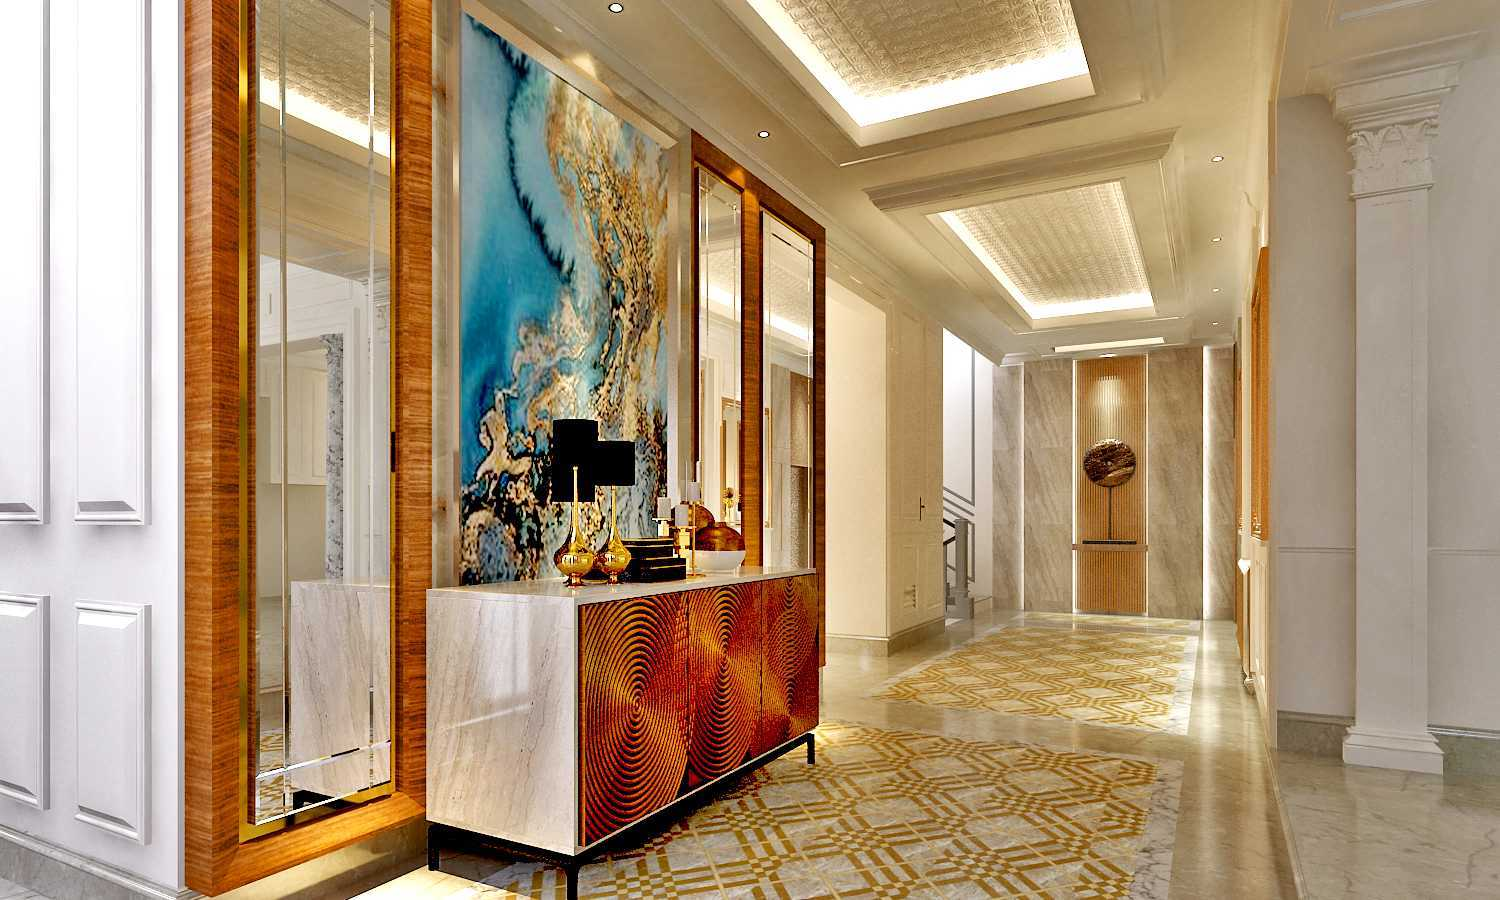 Rinto Katili, S.s.n, M.m Classical Residence Pantai Indah Kapuk, Jakarta Pantai Indah Kapuk, Jakarta Wall Treatment Before Dining Area Kontemporer 32691